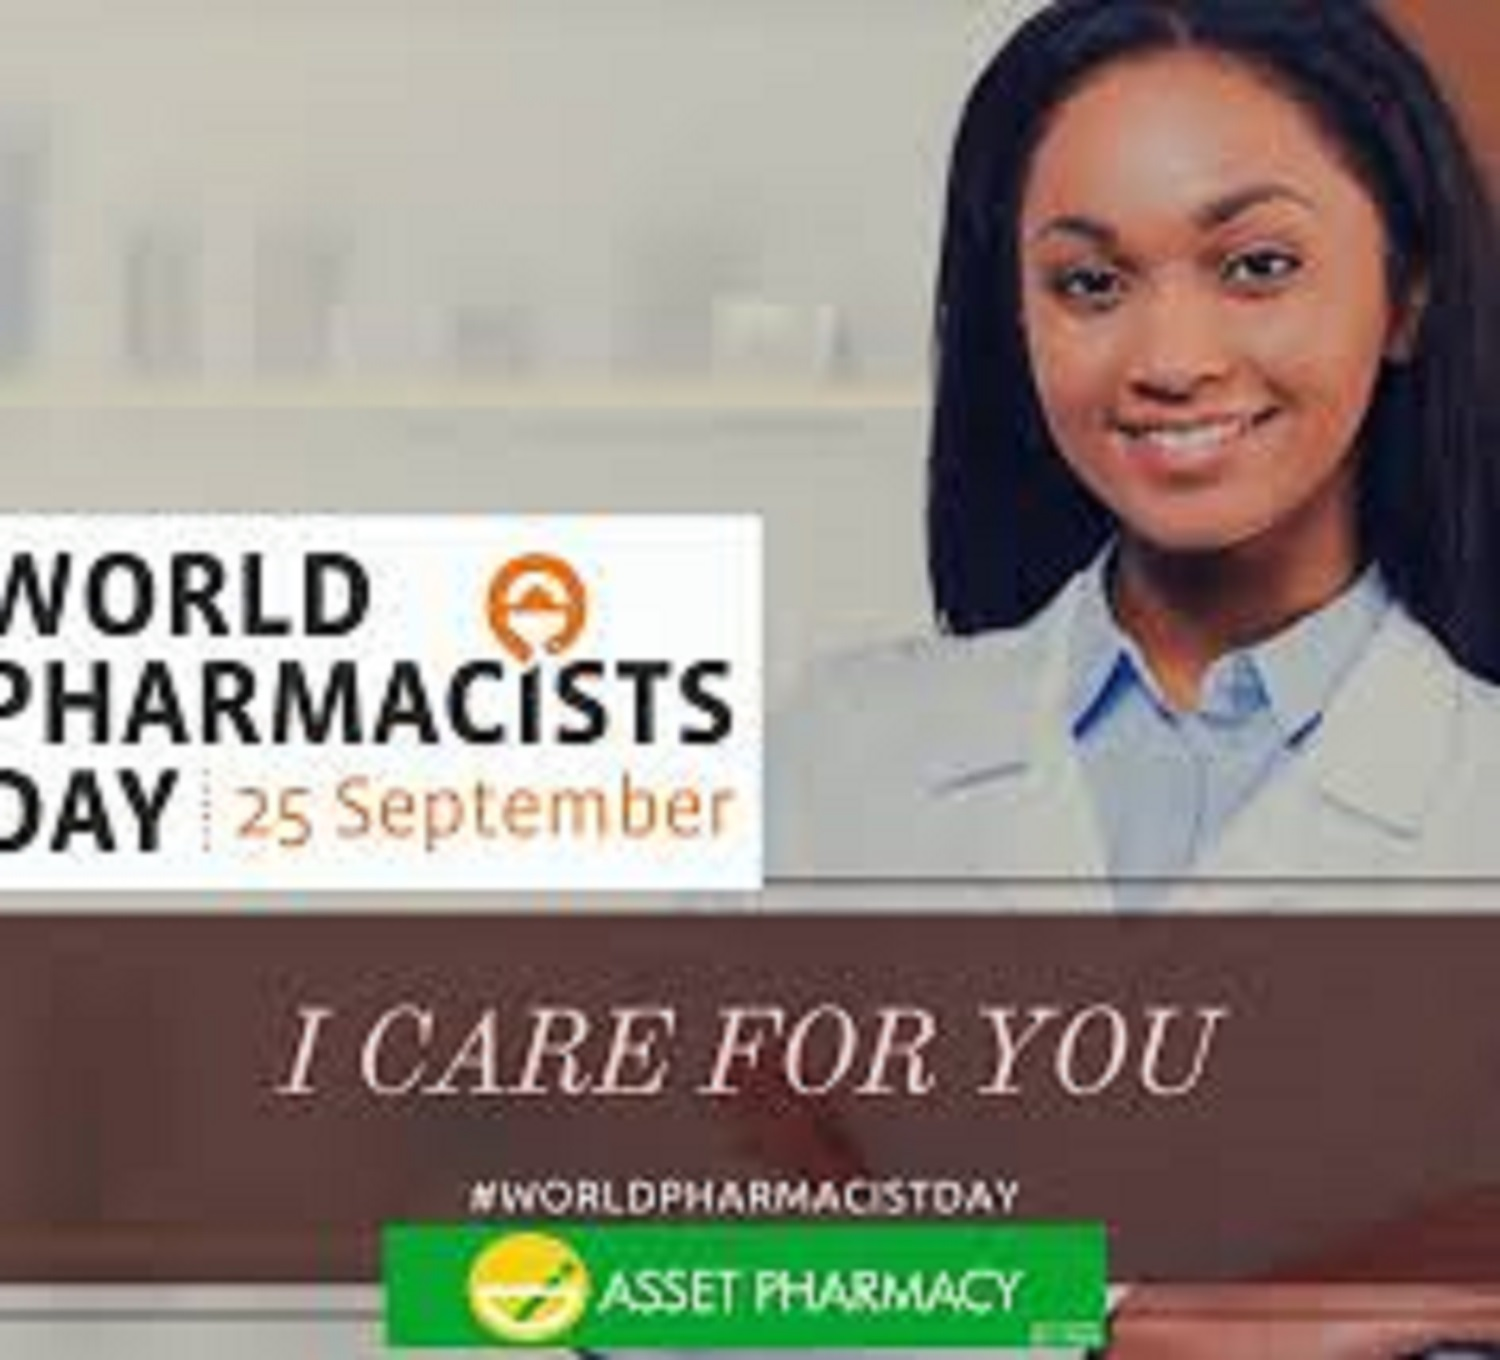 World Pharmacist Day: Low number of pharmacists worries new Imo chairman